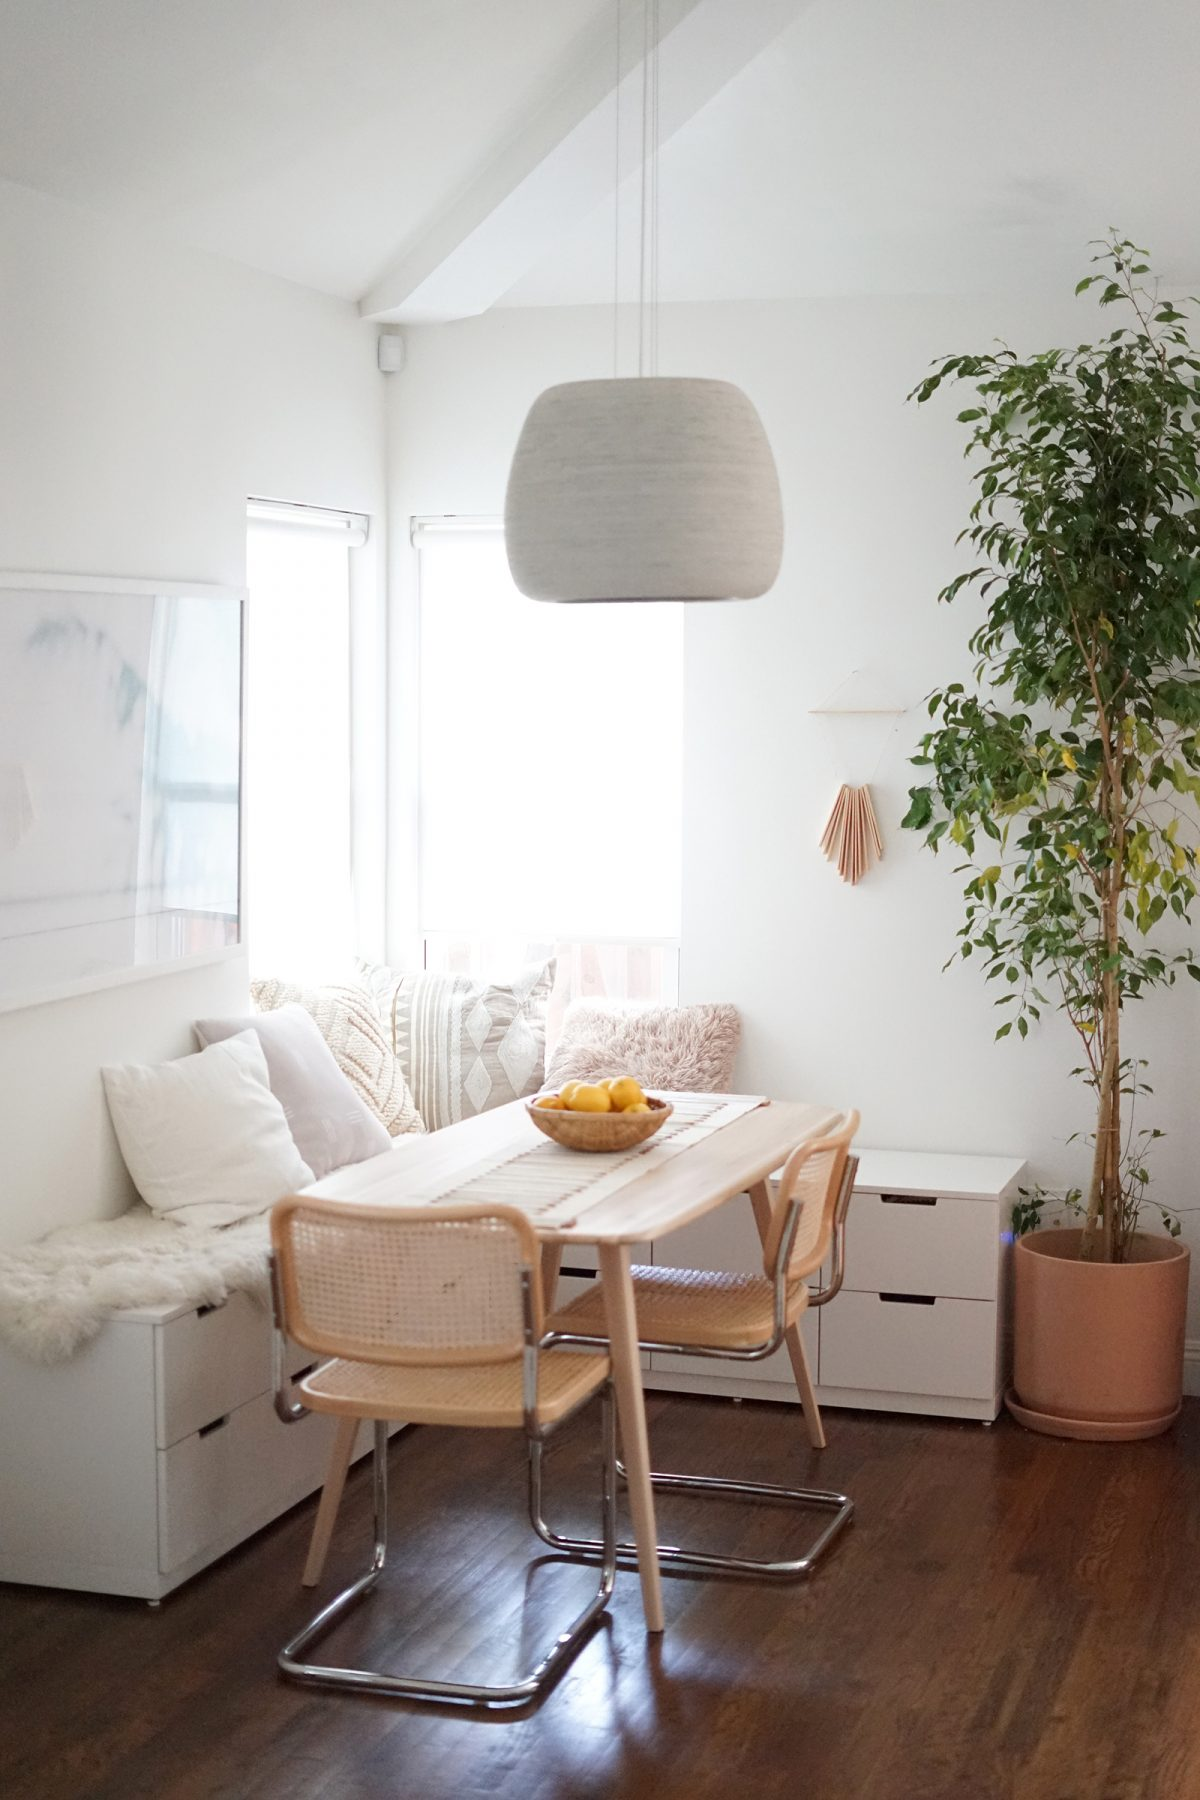 5 IKEA Hacks for Organizing Small Spaces | Real Simple